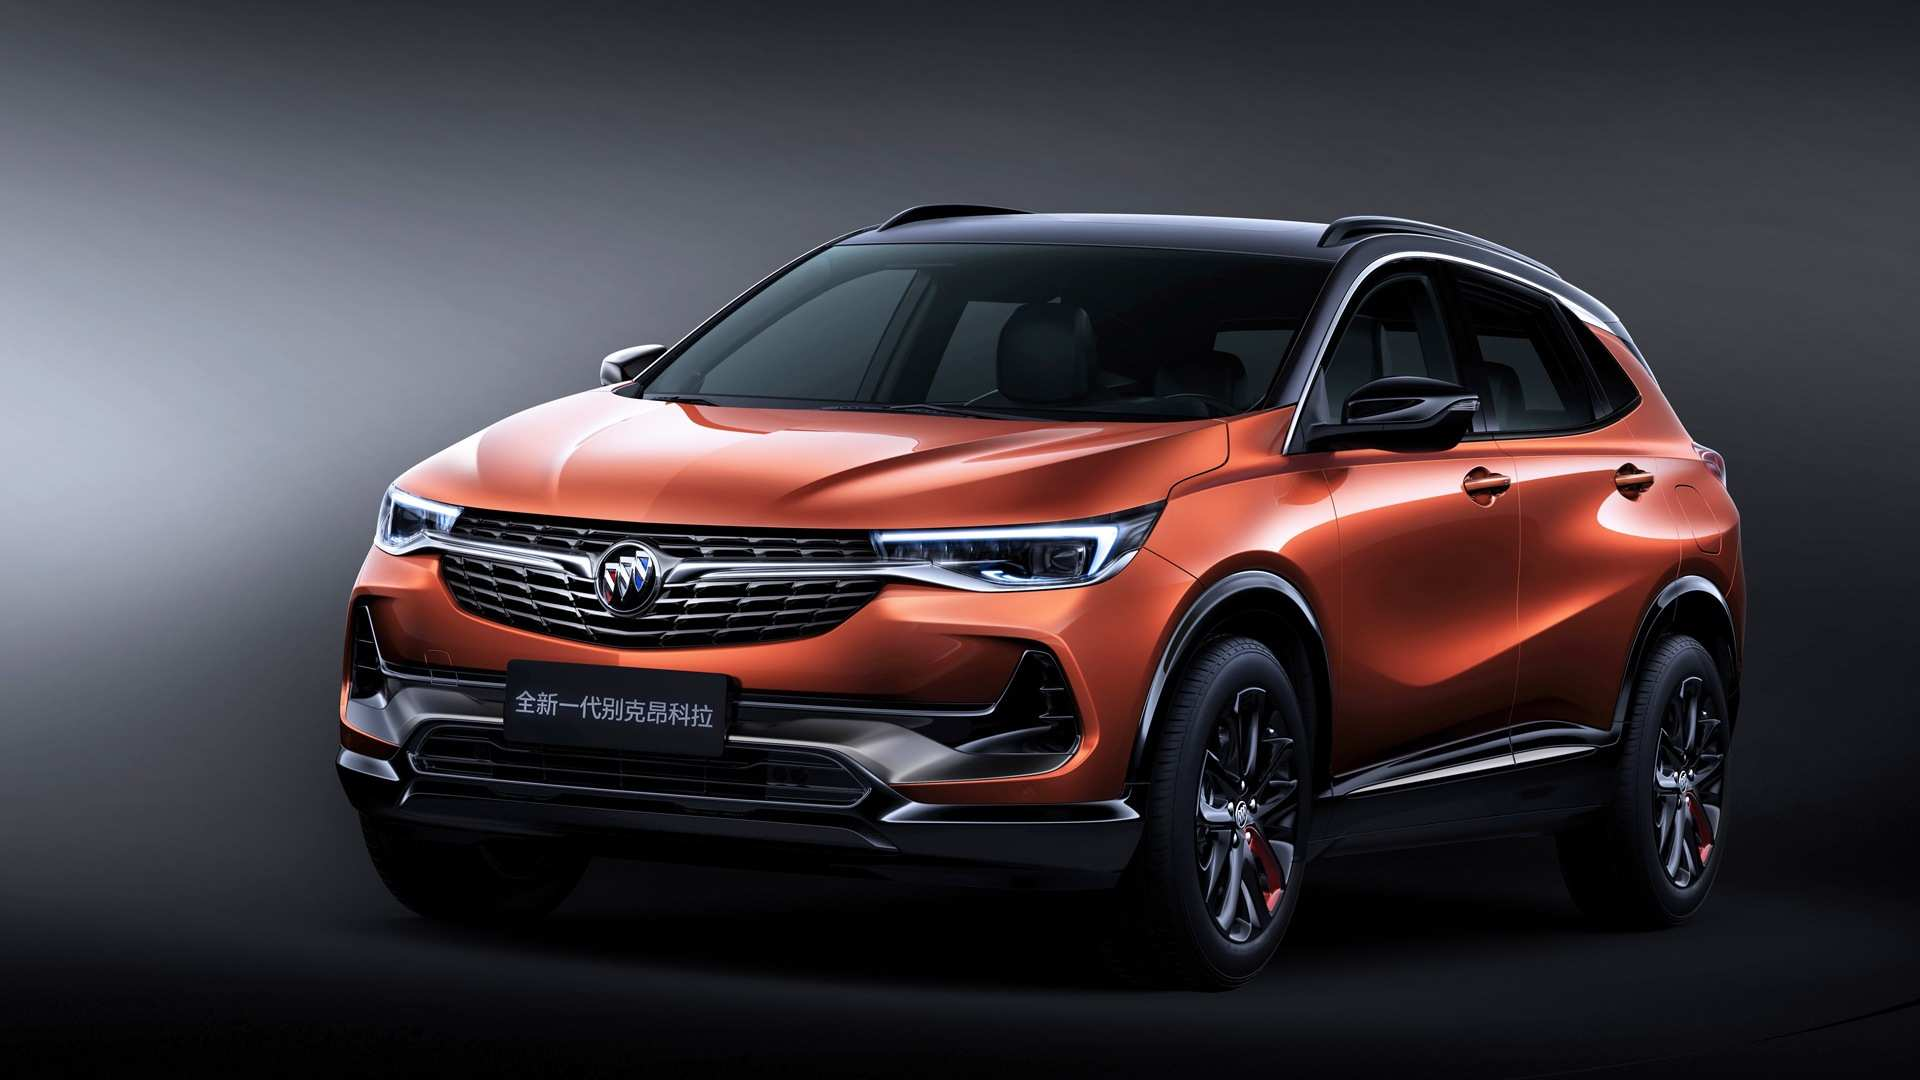 11 Concept of 2020 Buick Crossover Price by 2020 Buick Crossover